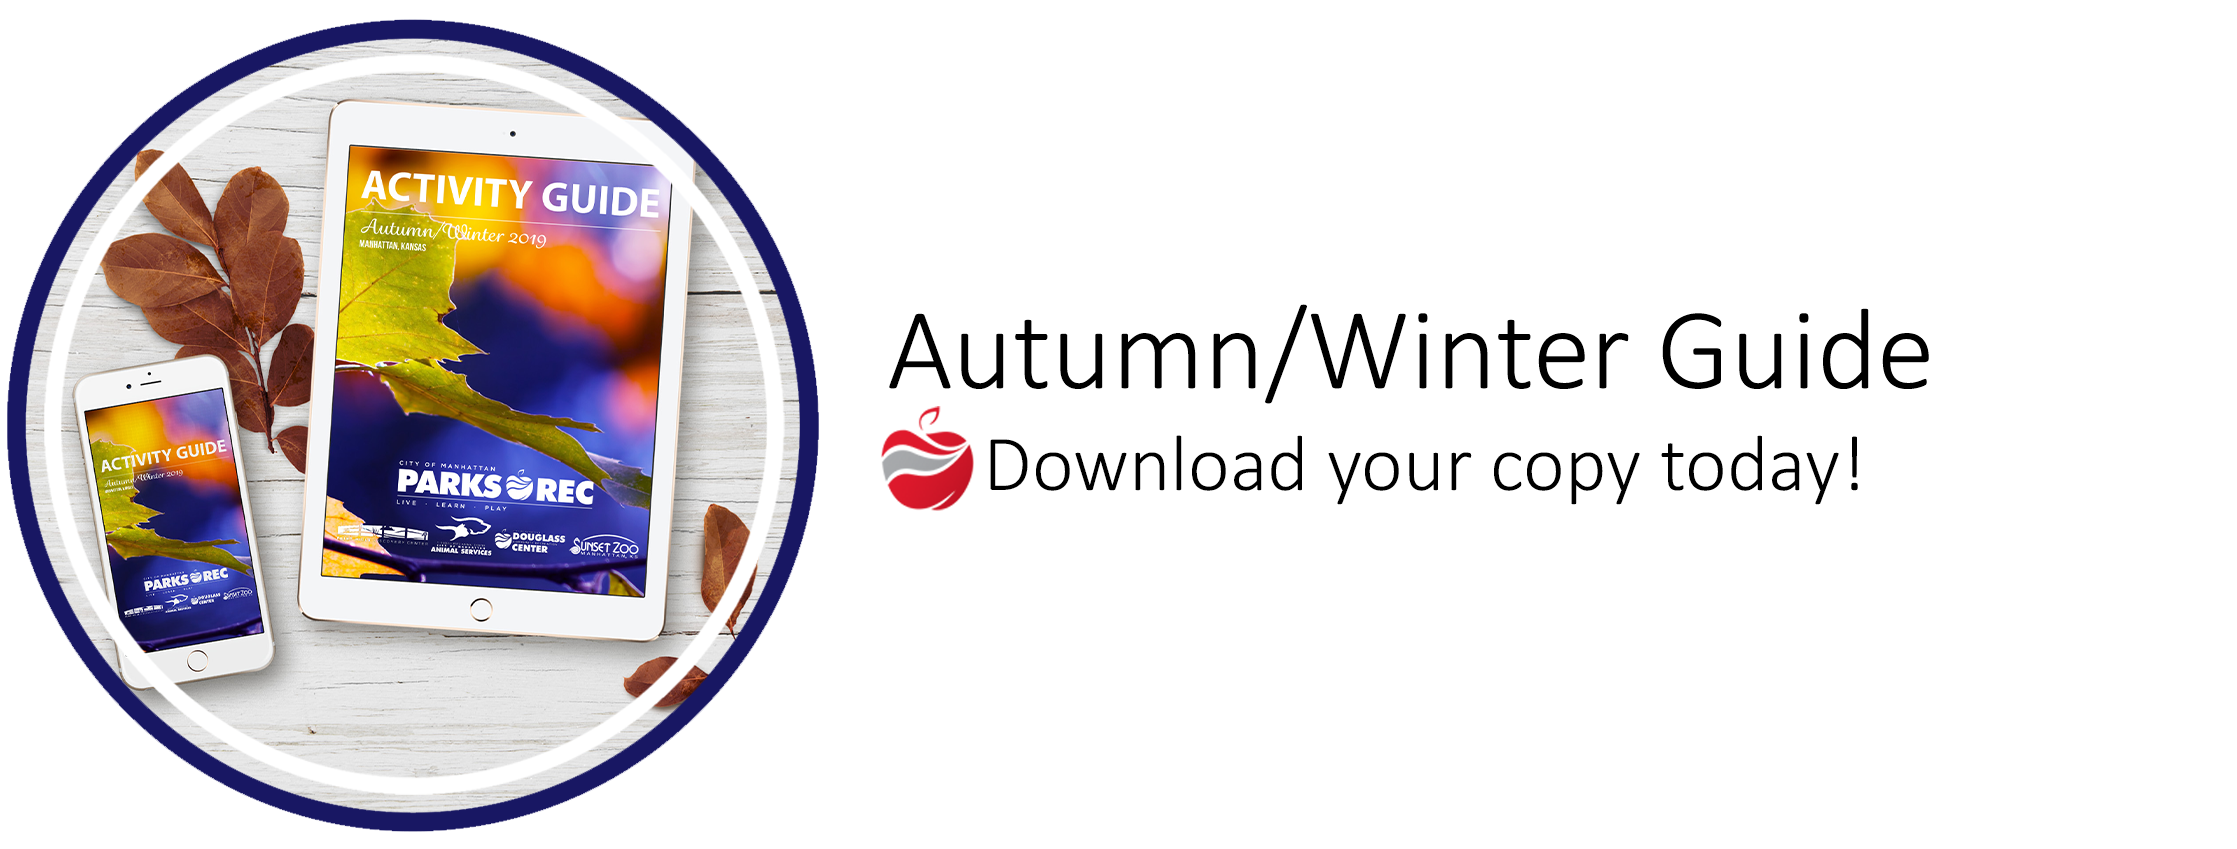 Autumn/Winter Activity Guide